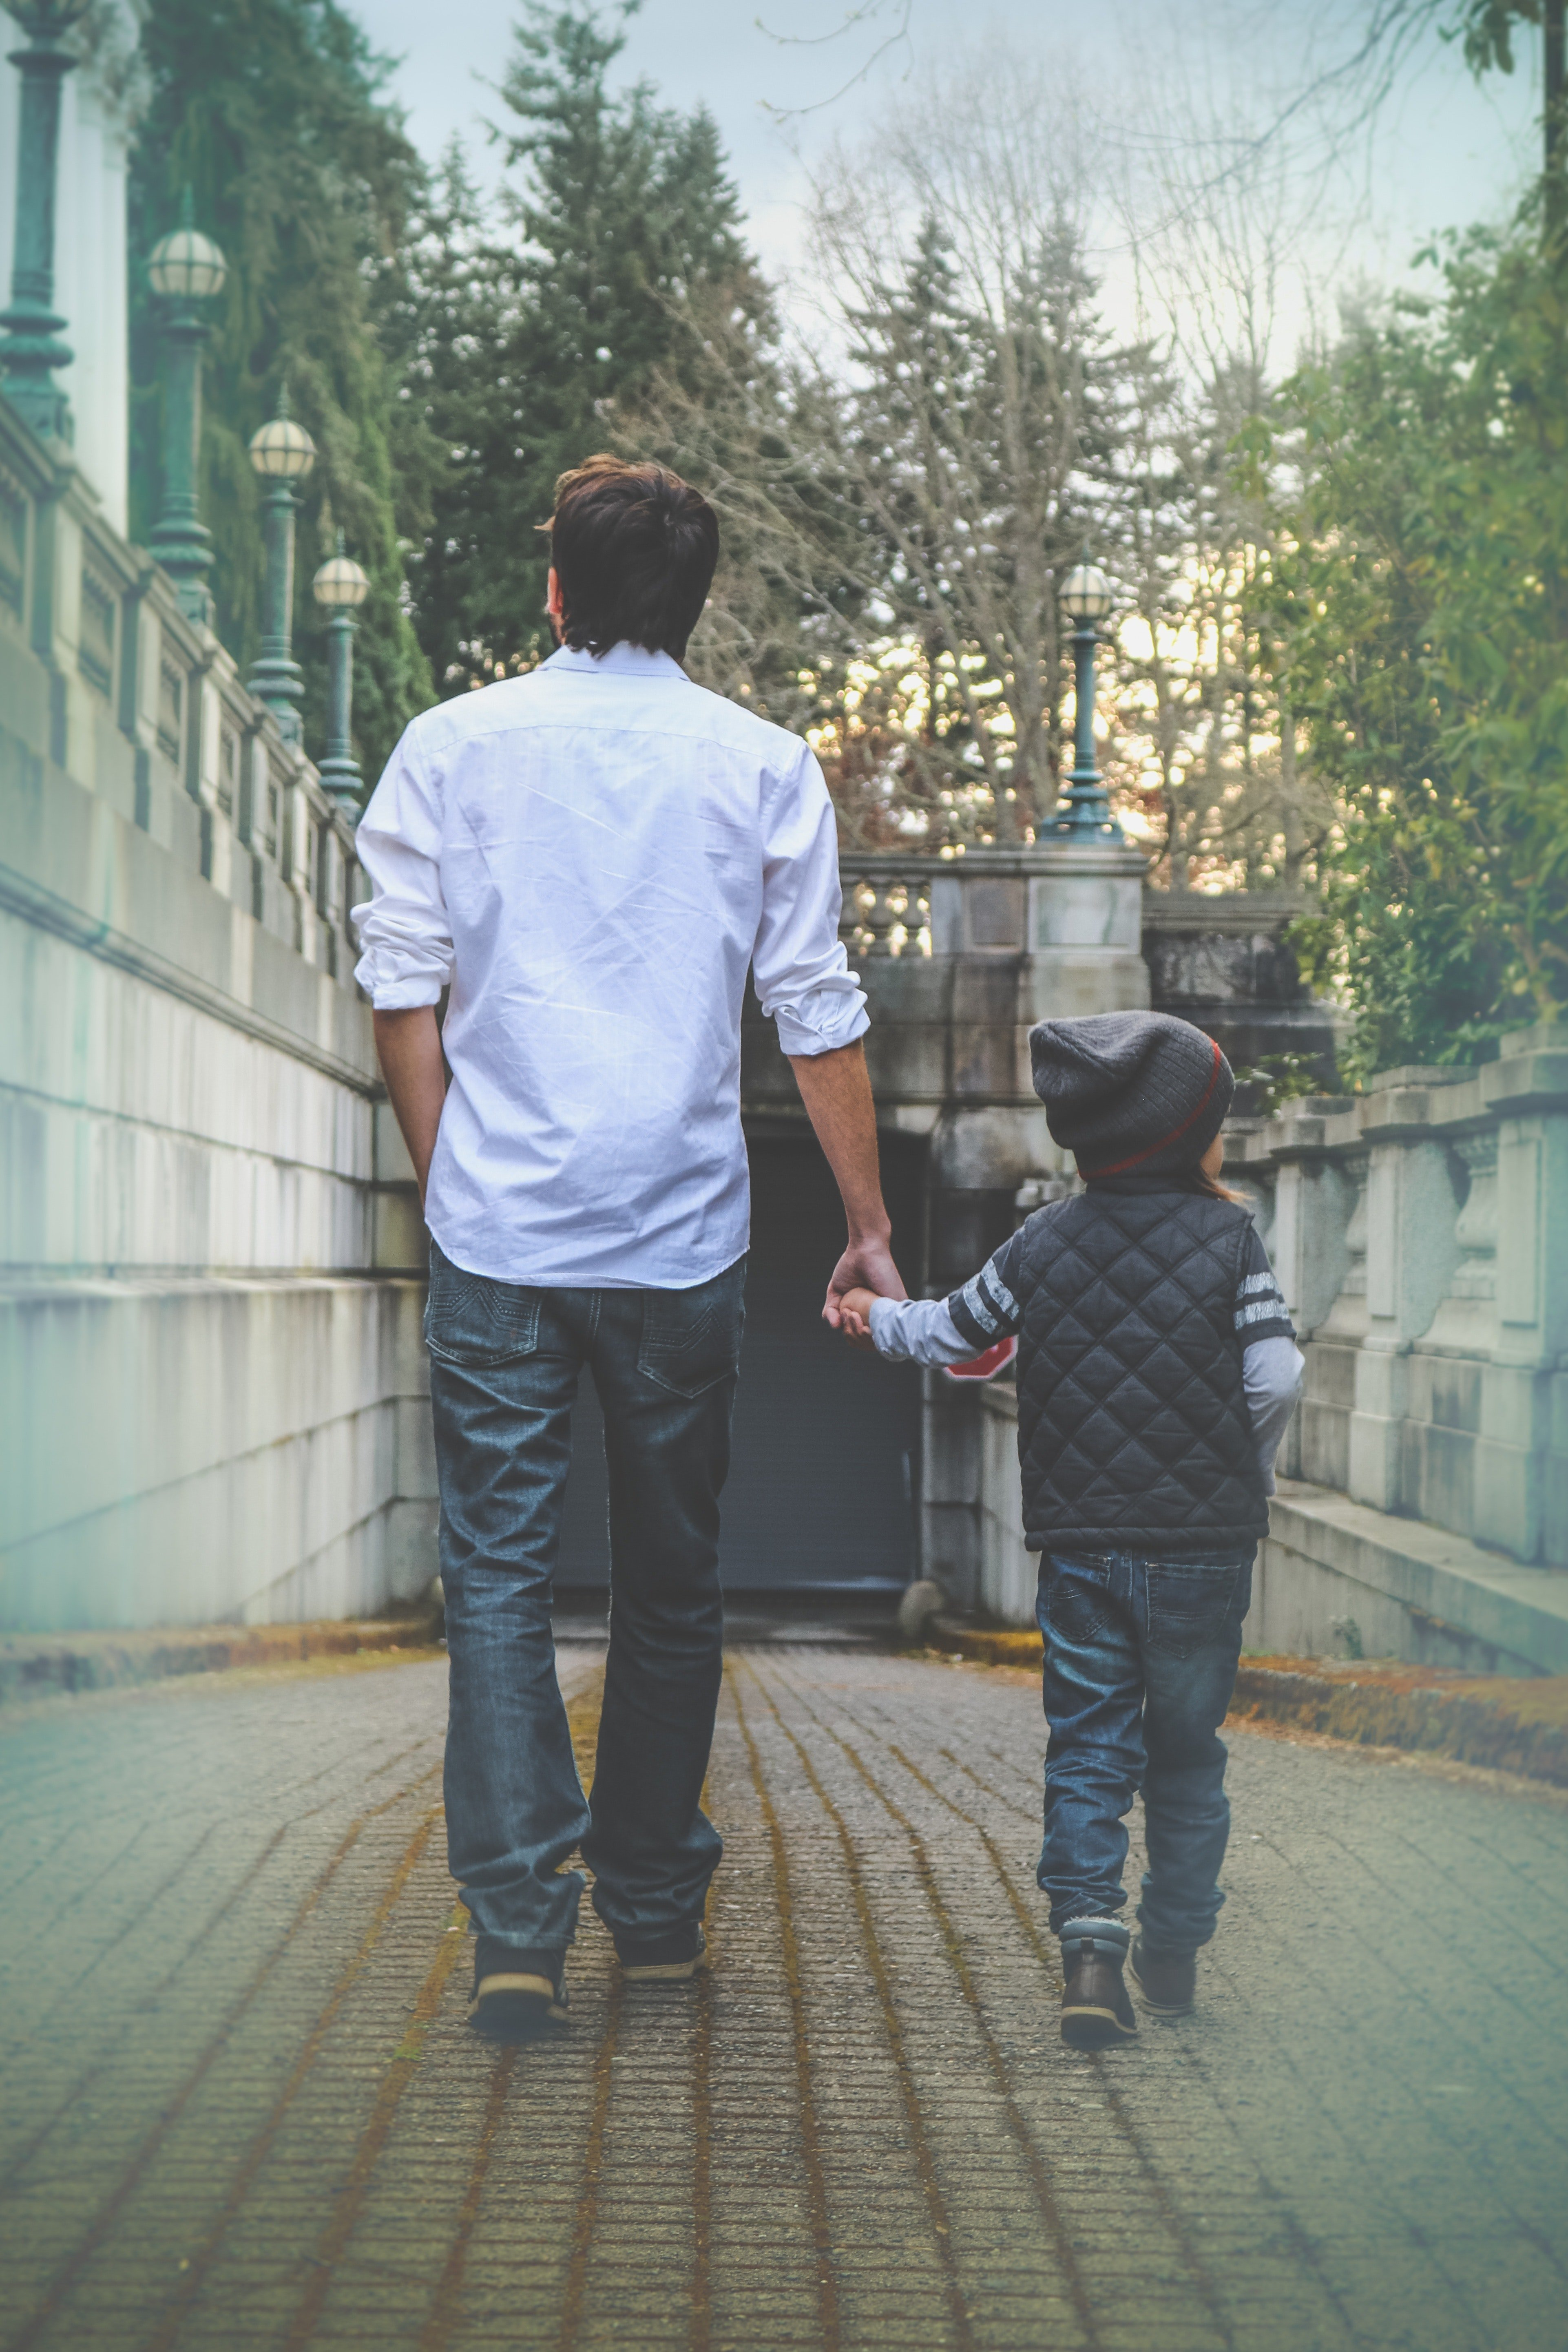 Father and son taking a walk. | Photo: Pexels